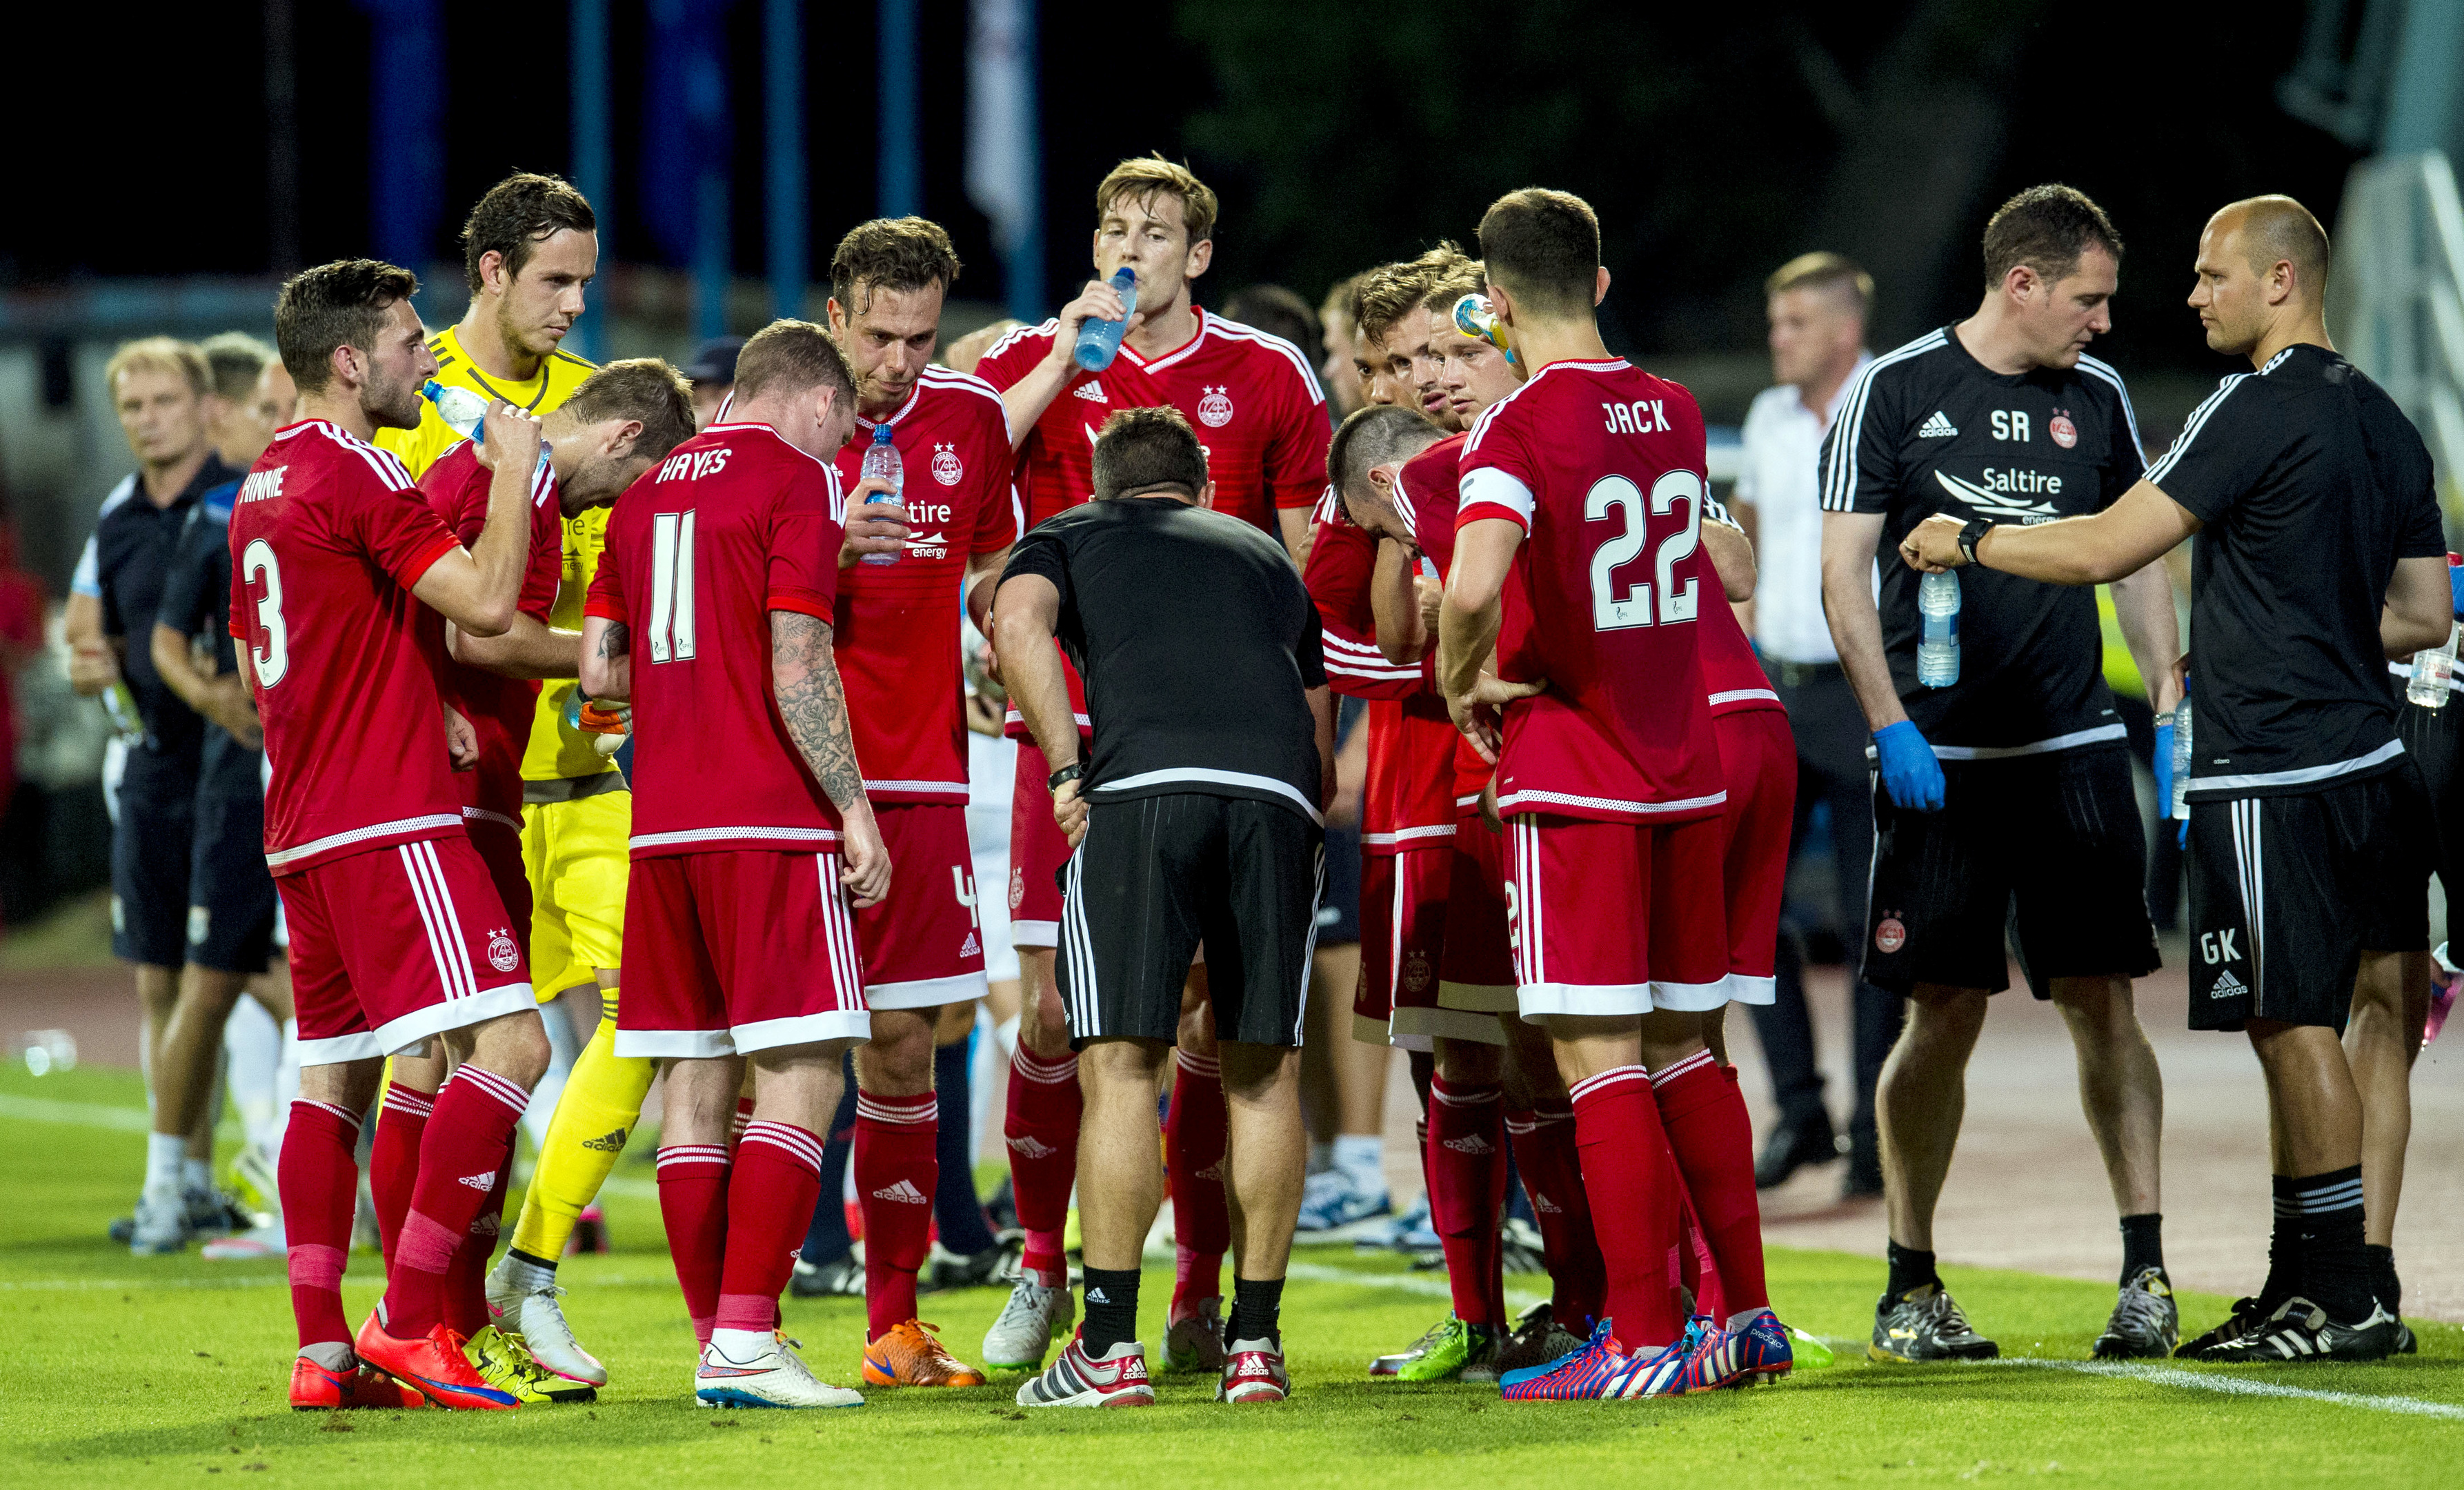 Cooling off:  The Aberdeen squad enjoy a water break during their match against Rijeka.